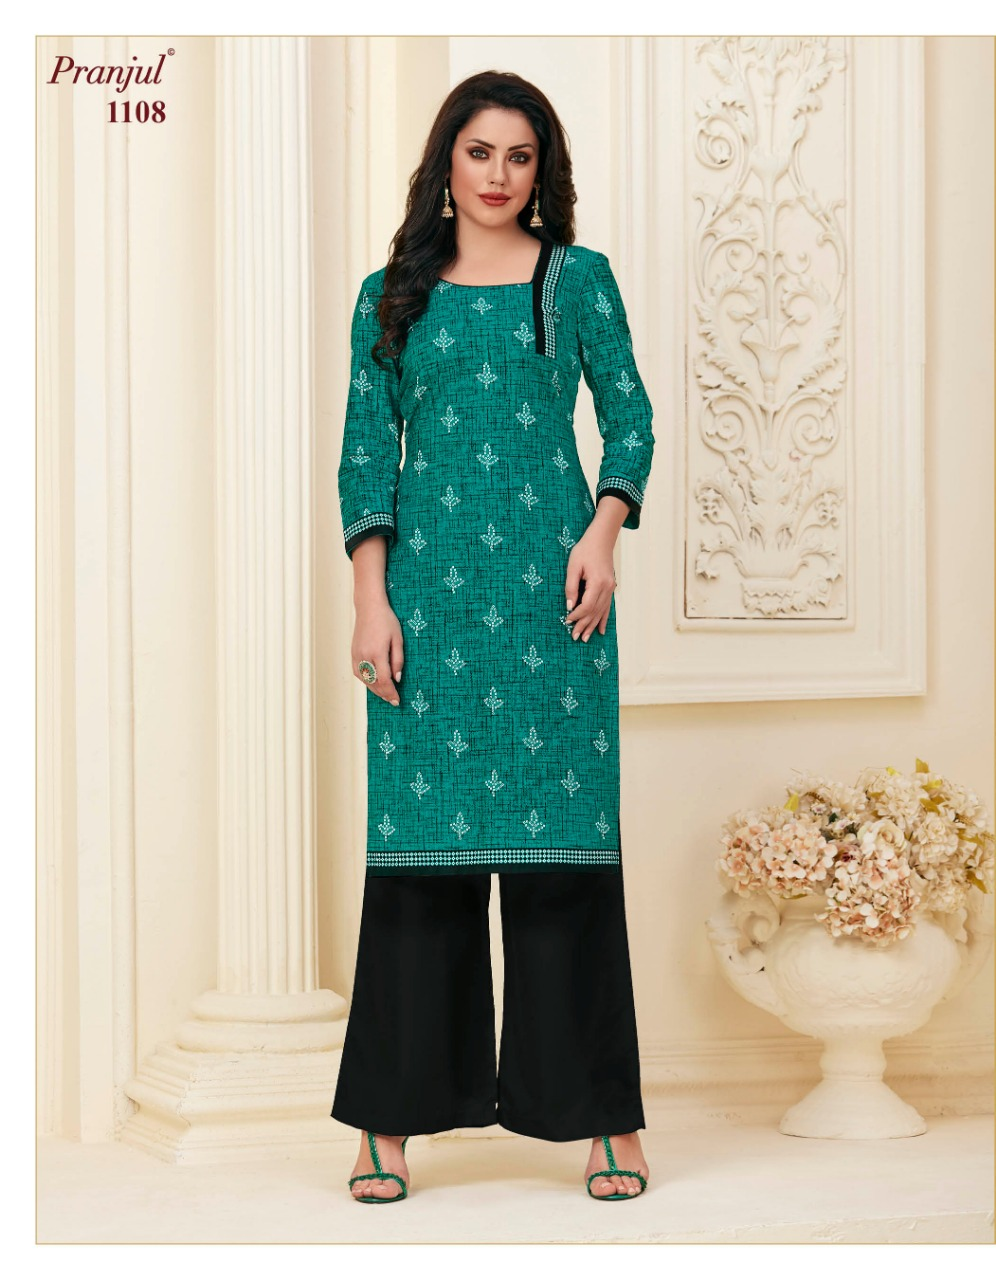 Pranjul Pari Vol 1 Kurti Wholesale Catalog 20 Pcs 10 - Pranjul Pari Vol 1 Kurti Wholesale Catalog 20 Pcs